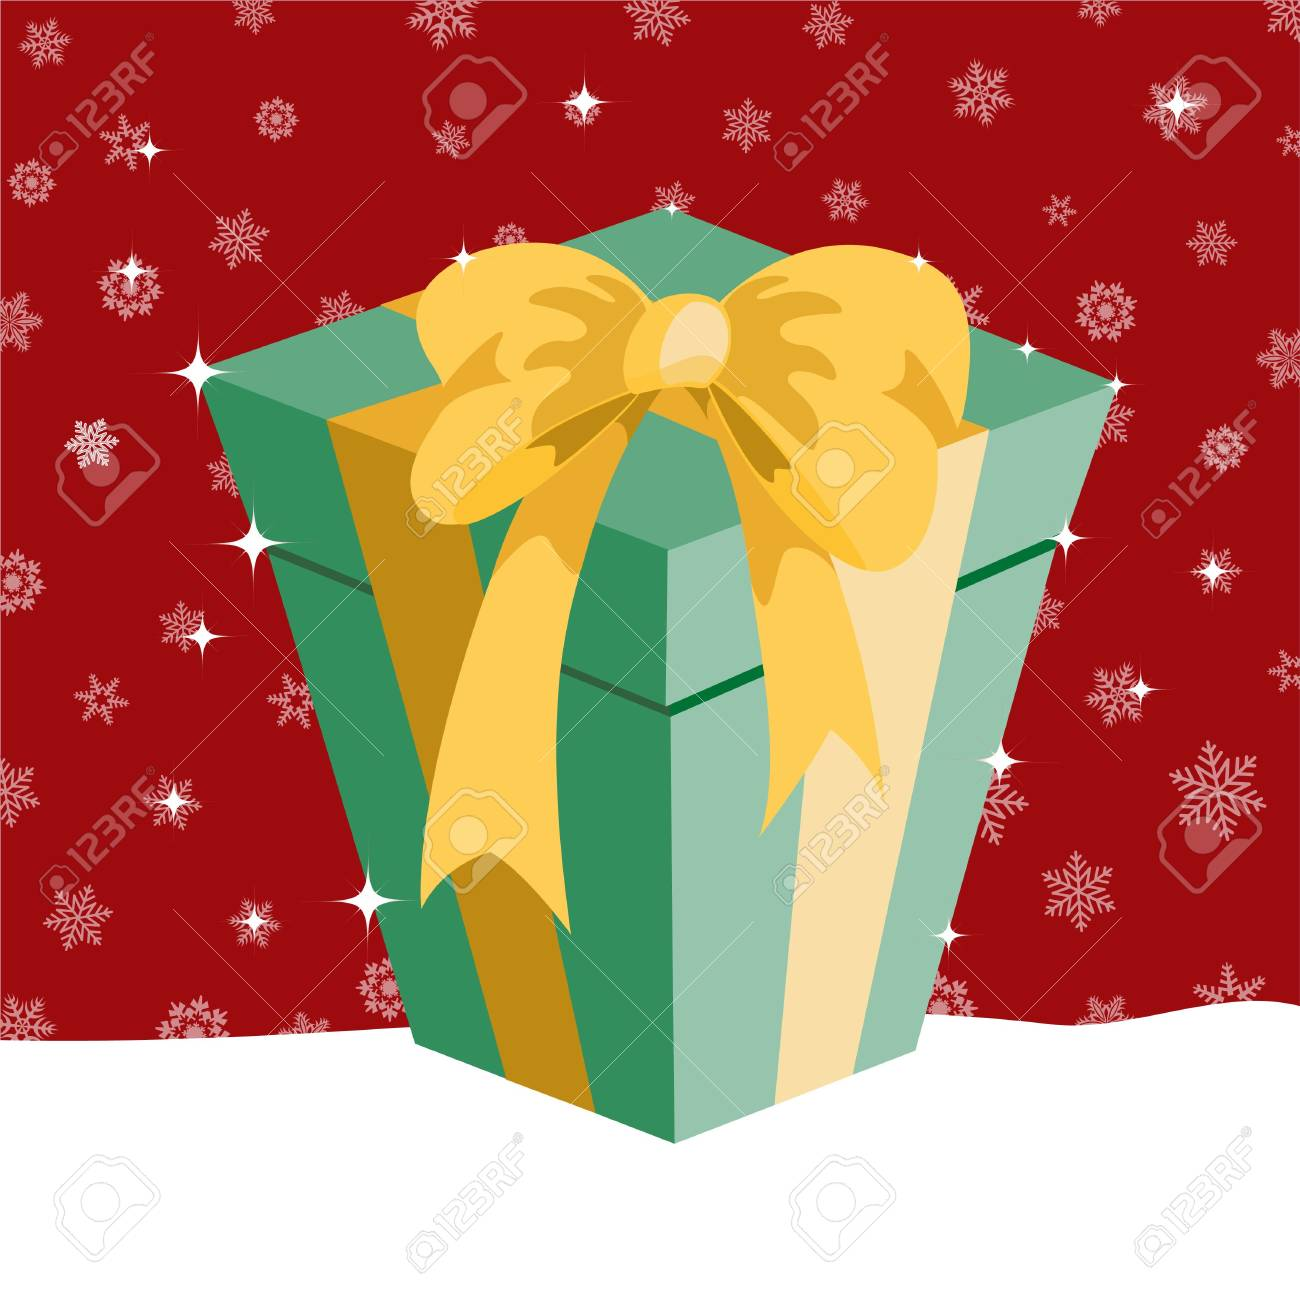 illustration of Christmas presents box on the red background with the white snowflakes Stock Photo - 6158436